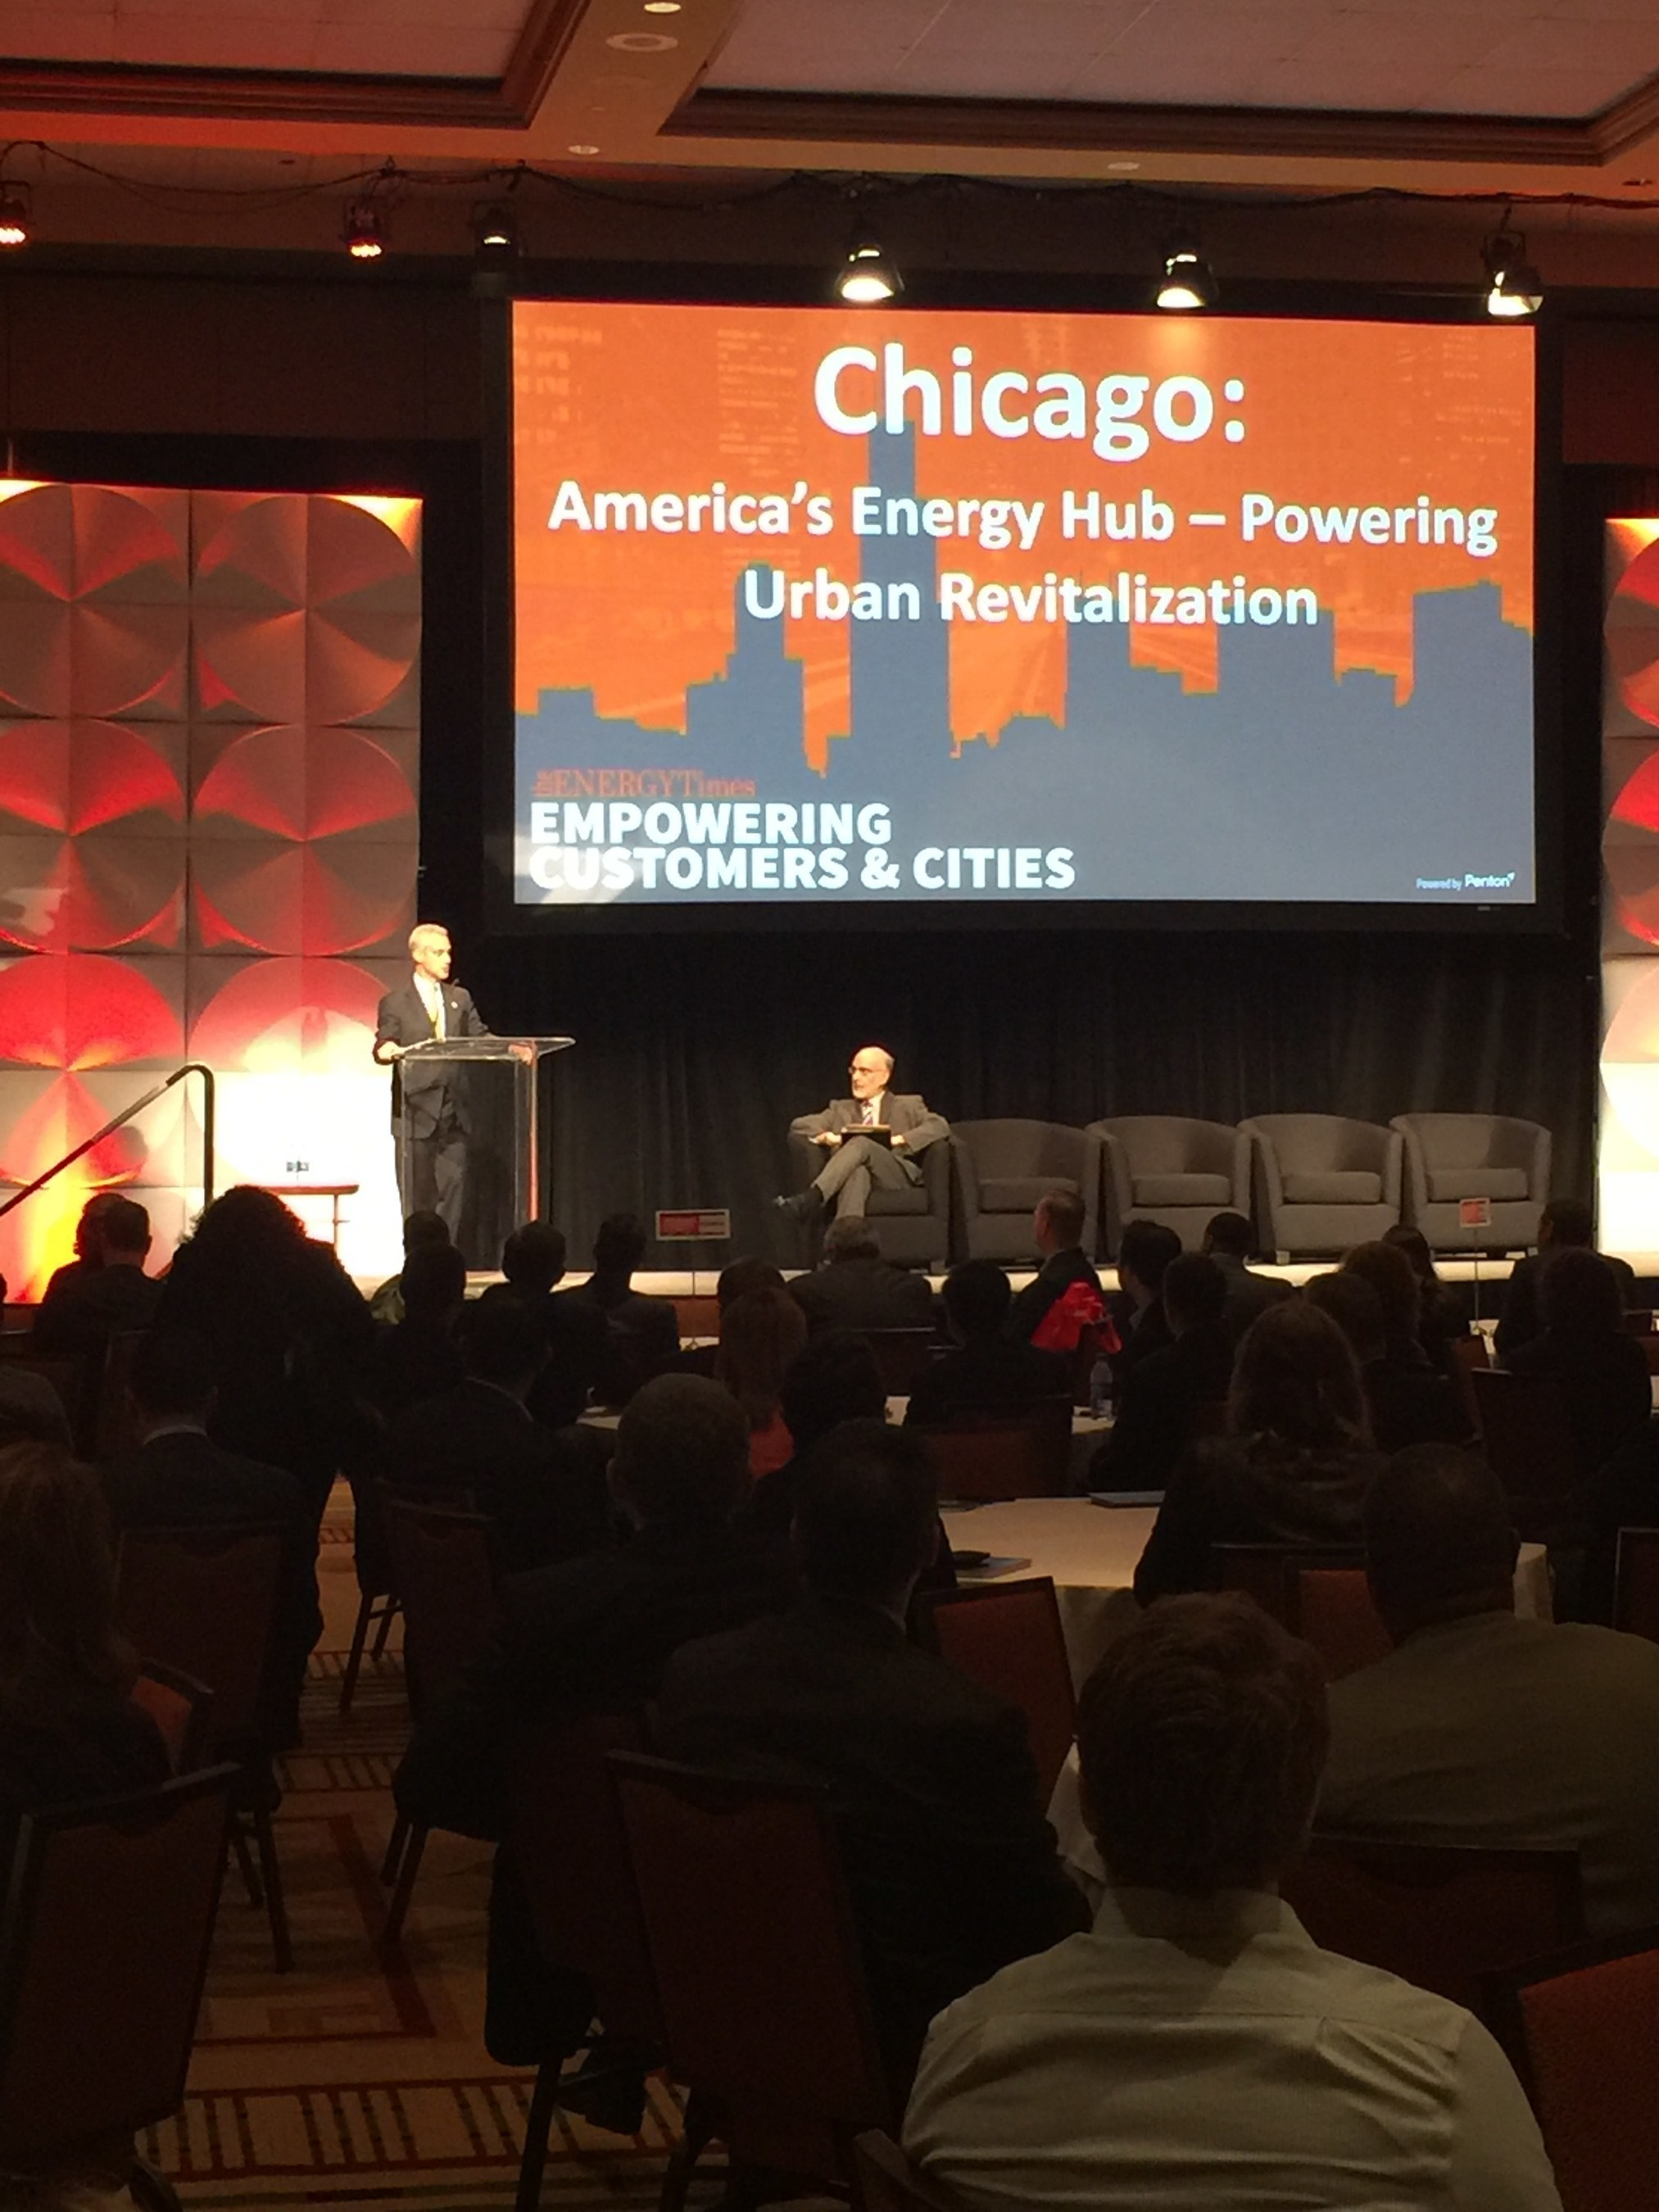 Energy Leaders Tackled Critical Issues at Penton's Empowering Customers & Cities Event in Chicago